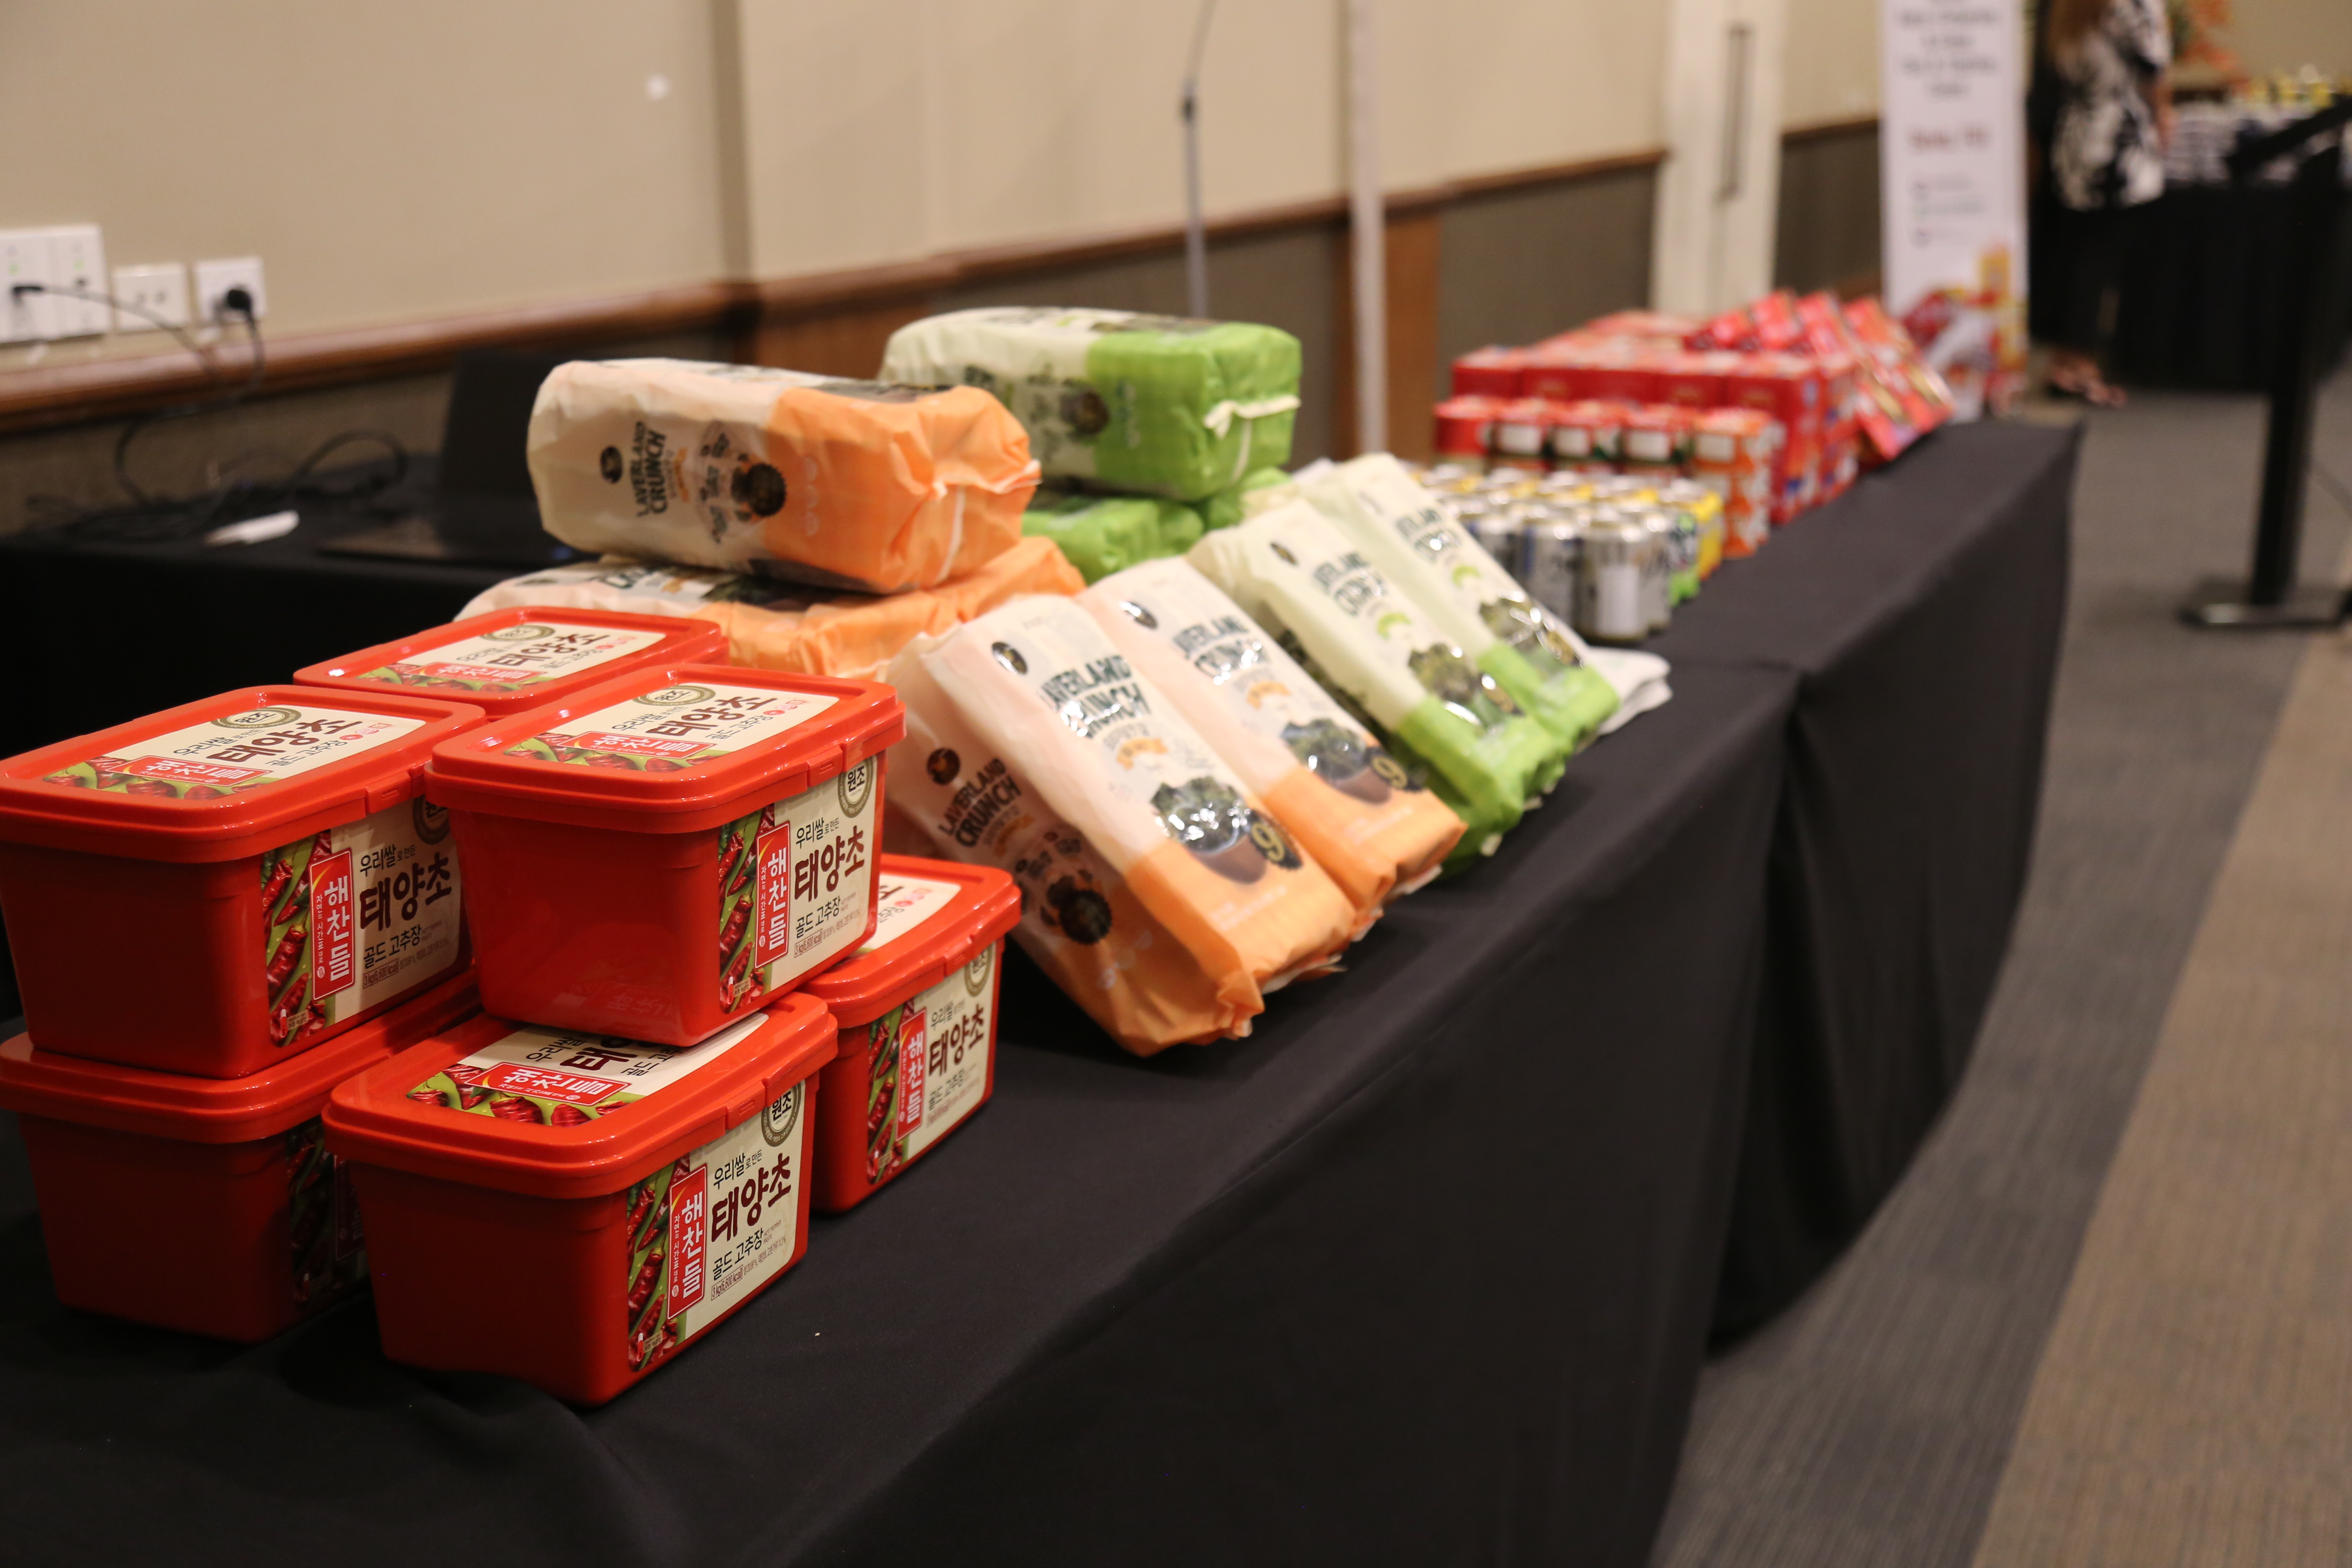 Range of Korean products that was displayed at the 2020 Korea Agro-Fisheries Food Fair and Tasting event at the Grand Pacific Hotel in Suva on August 26, 2020. Photo: Jennis Naidu